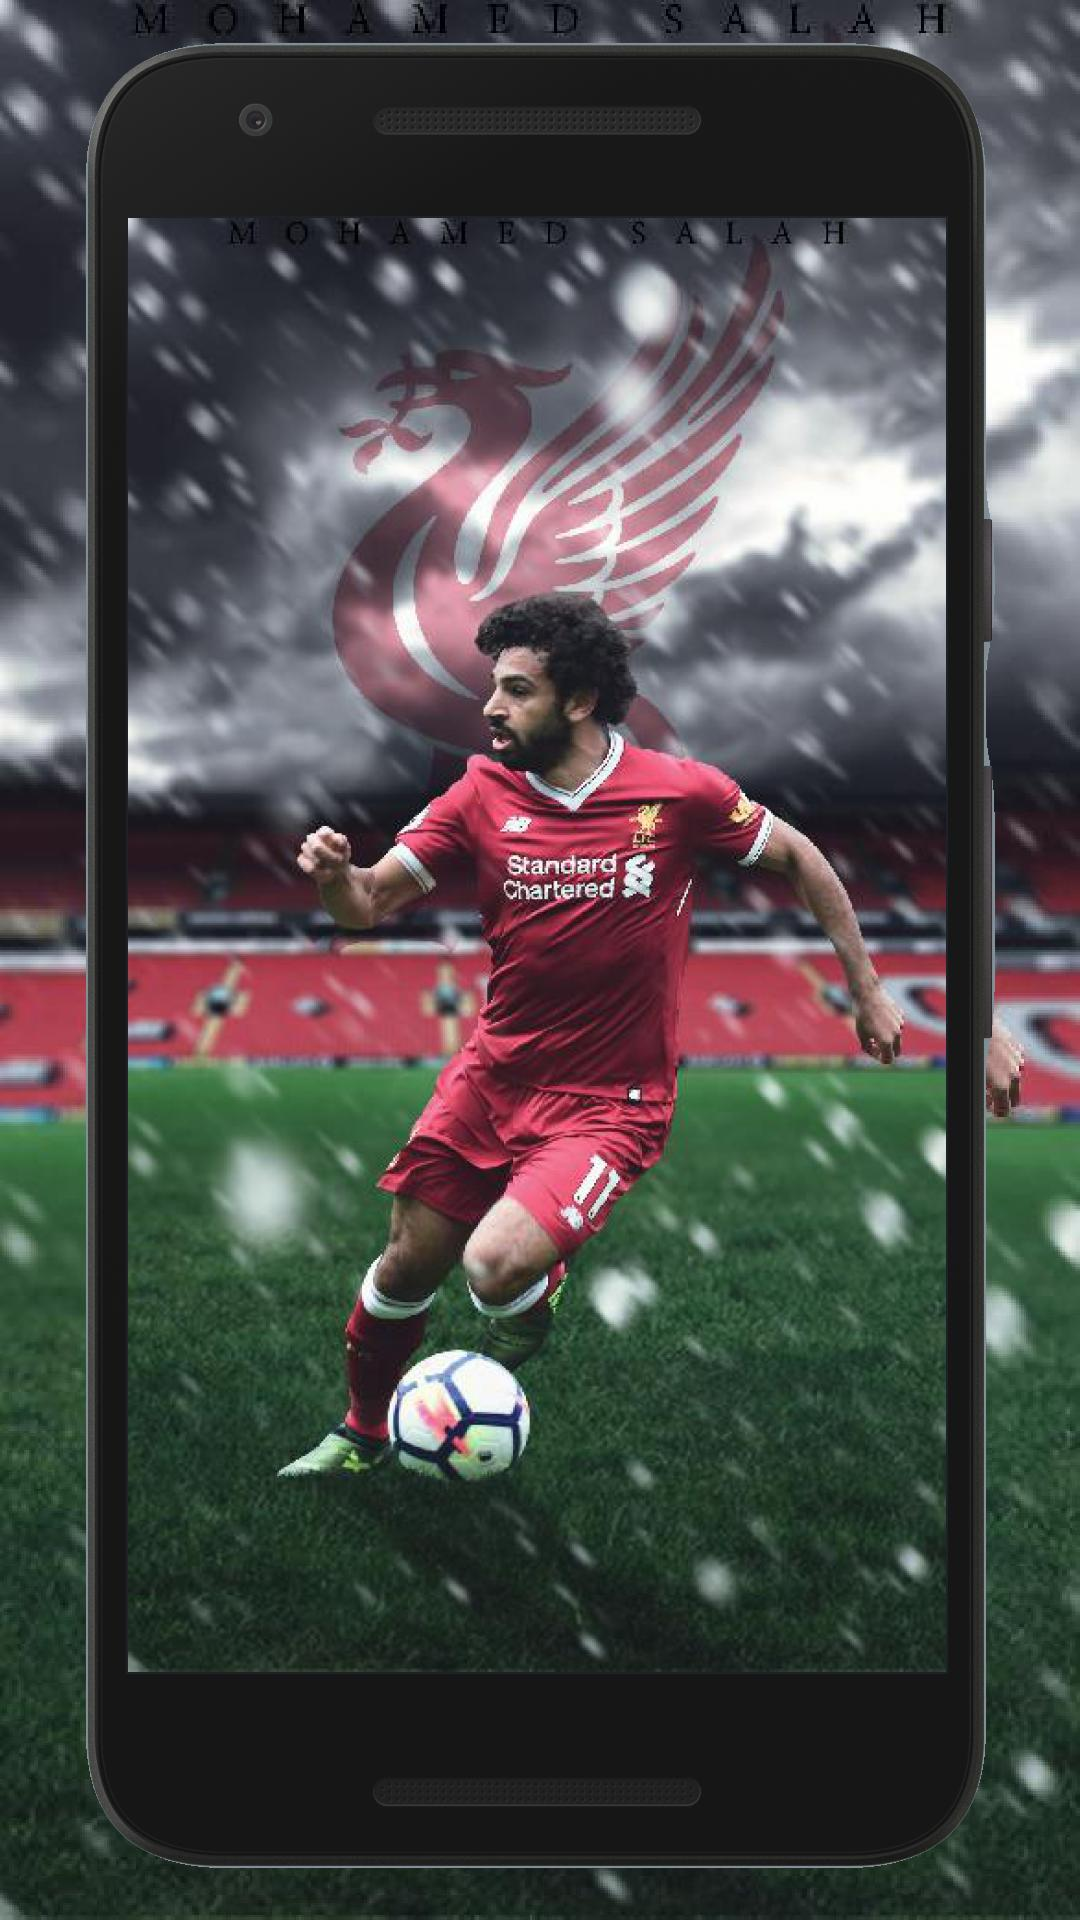 Mohamed Salah Wallpapers Hd 4k For Android Apk Download